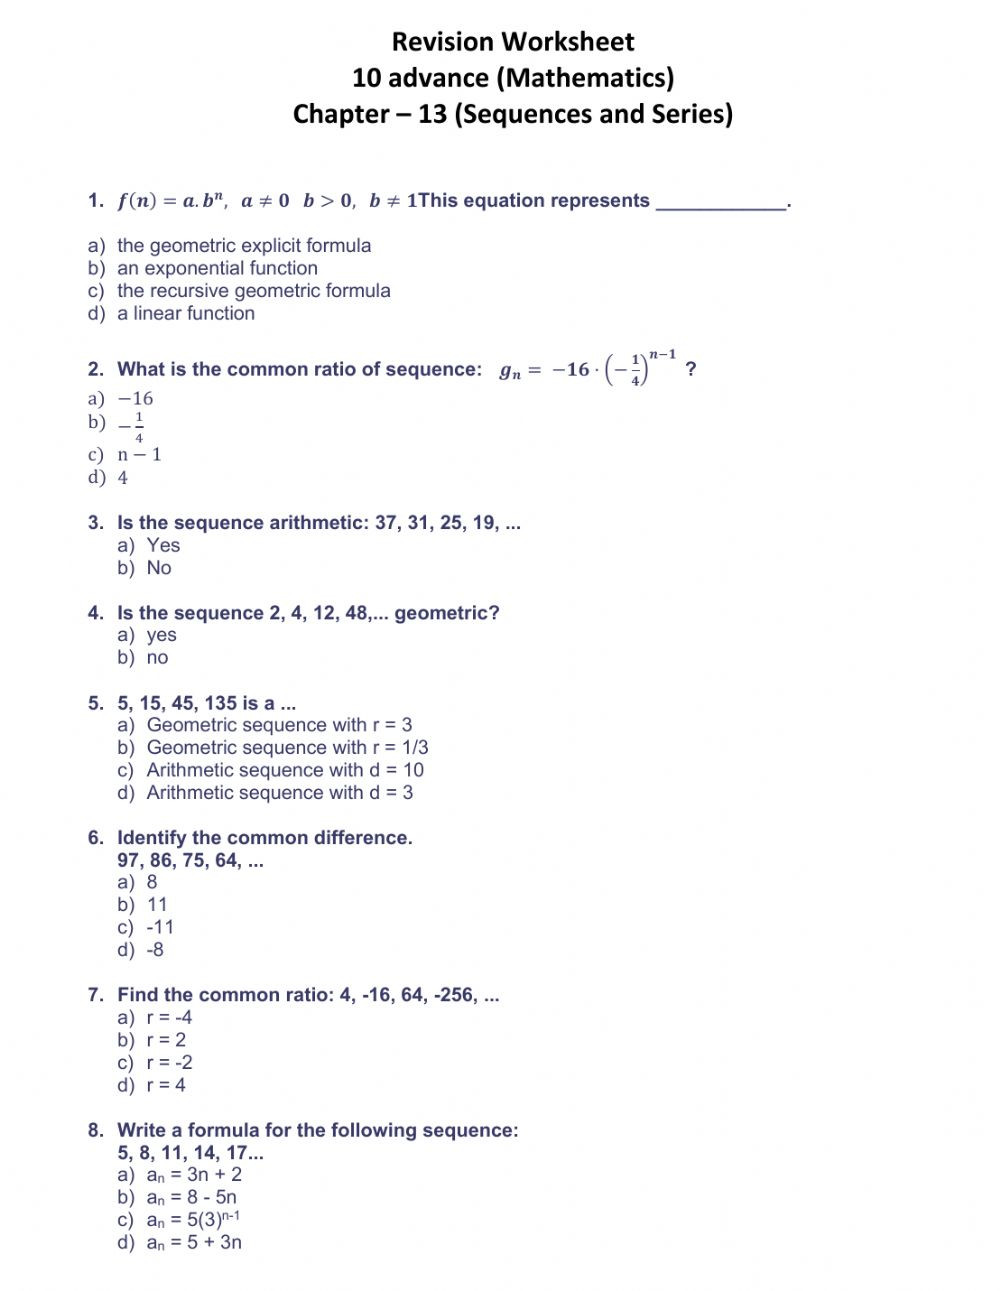 Sequences and Series Worksheet Answers Sequences and Series Ch 13 10a Interactive Worksheet